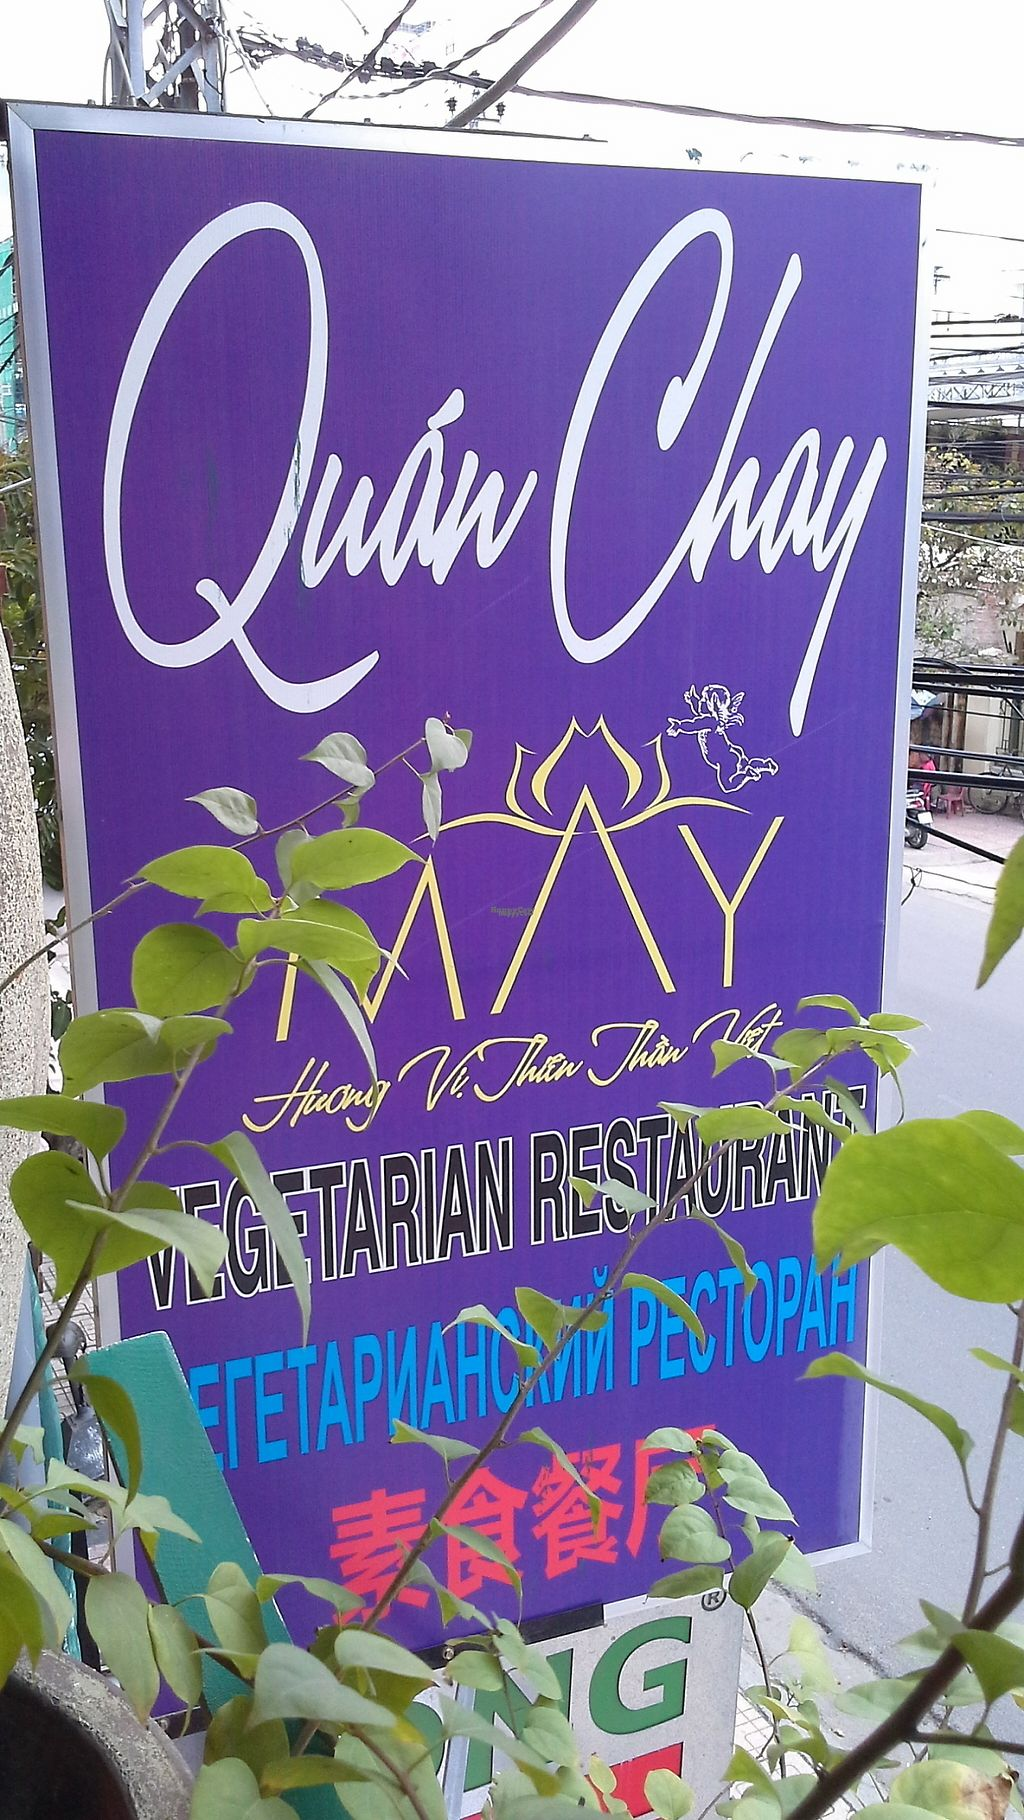 """Photo of May Quan Chay  by <a href=""""/members/profile/engel-online"""">engel-online</a> <br/>Sign of Quàn chay <br/> January 23, 2017  - <a href='/contact/abuse/image/84449/215377'>Report</a>"""